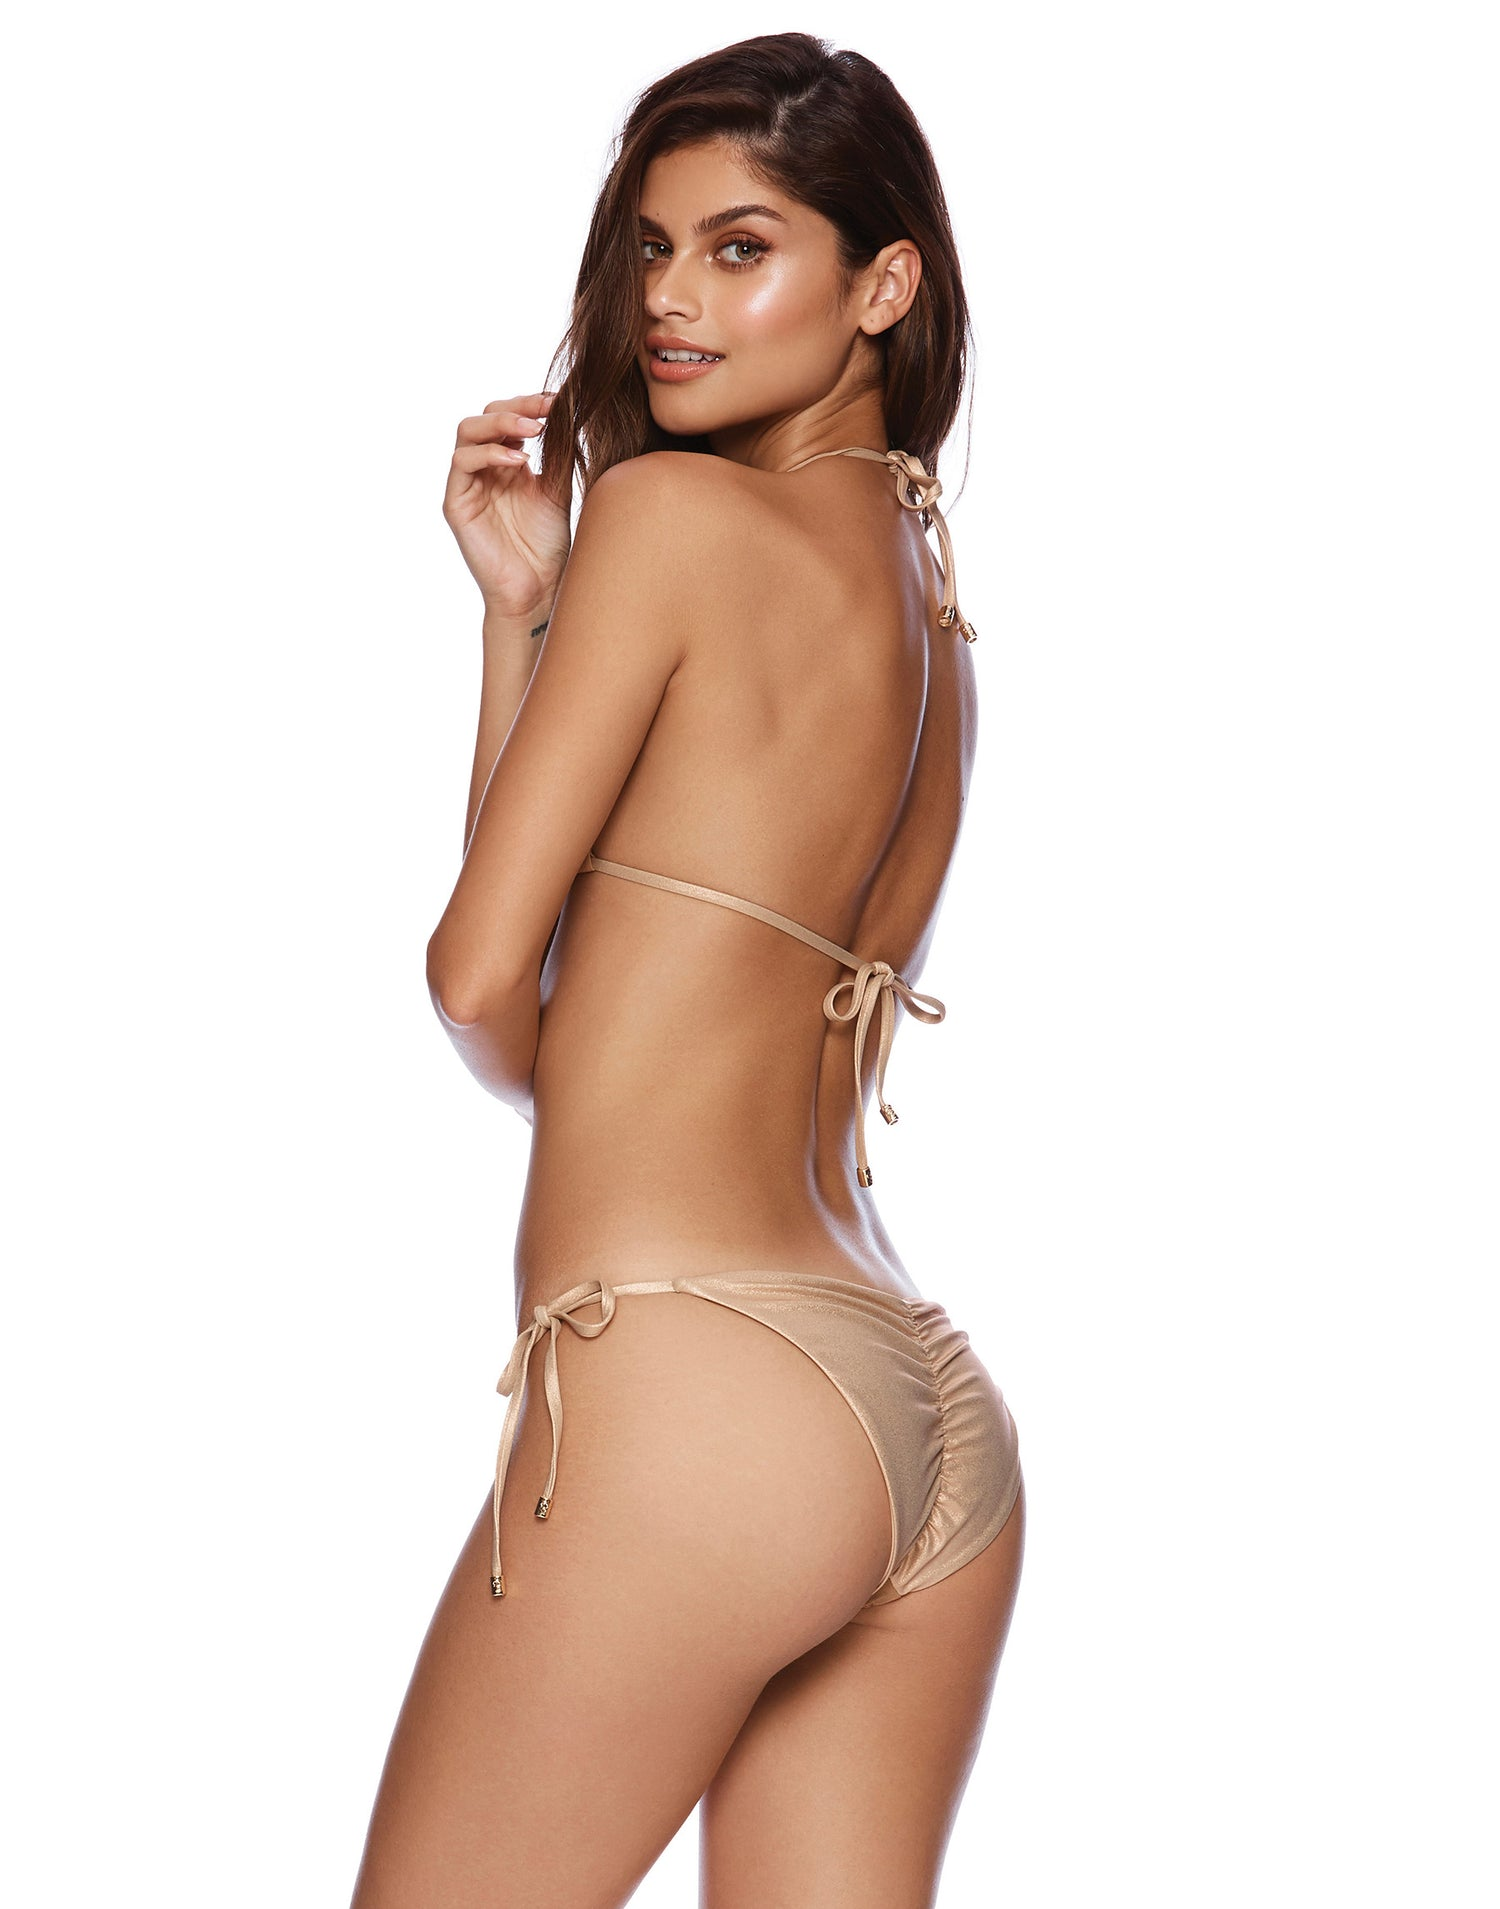 Nala Triangle Bikini Top in Rose Gold with Beads and Sequins - Alternate Back View